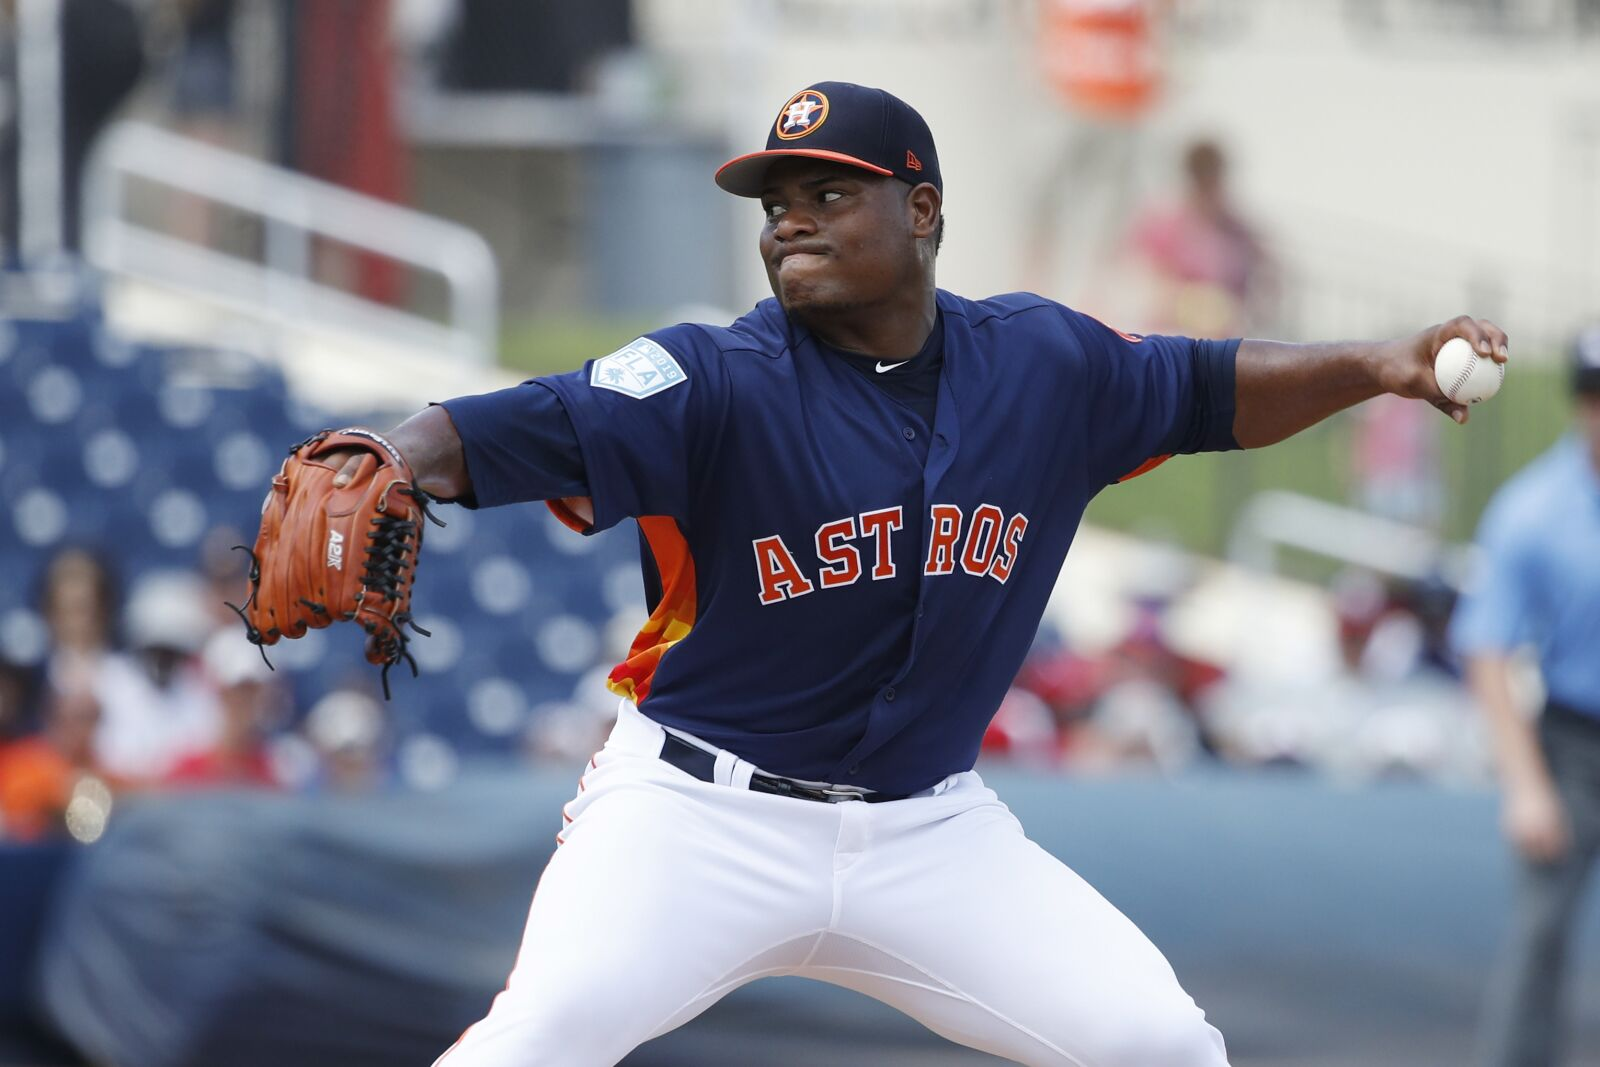 Astros: Pitching depth will be key this season